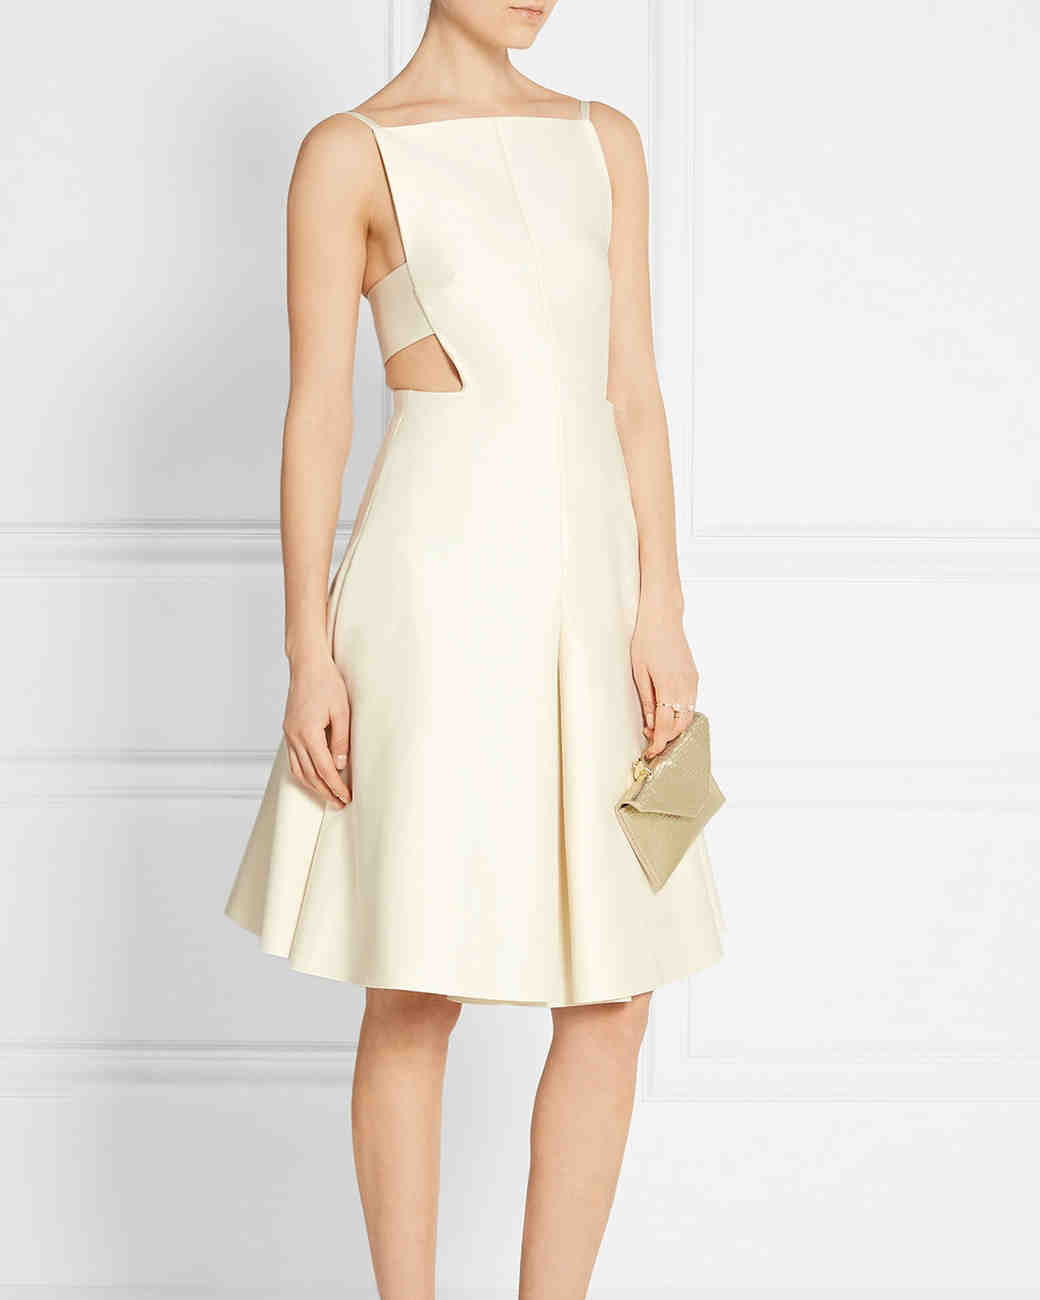 bridal-shower-dress-solace-london-cutout-dress-0416.jpg